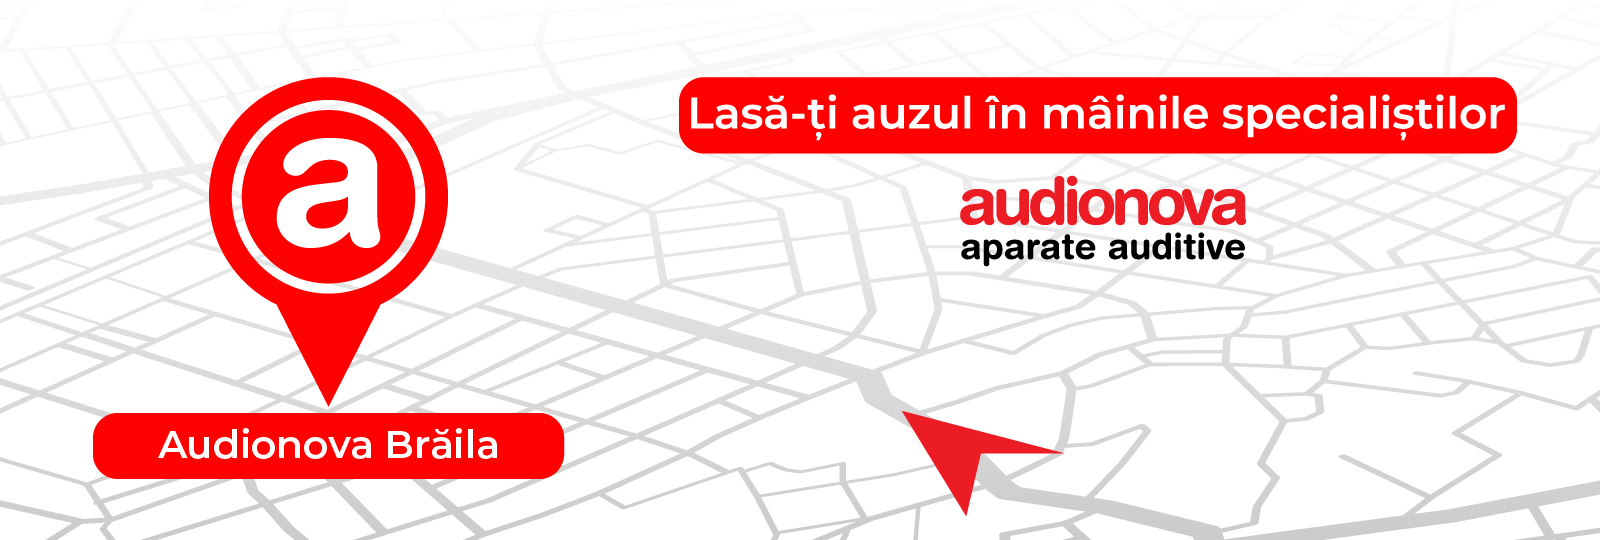 aparate auditive braila